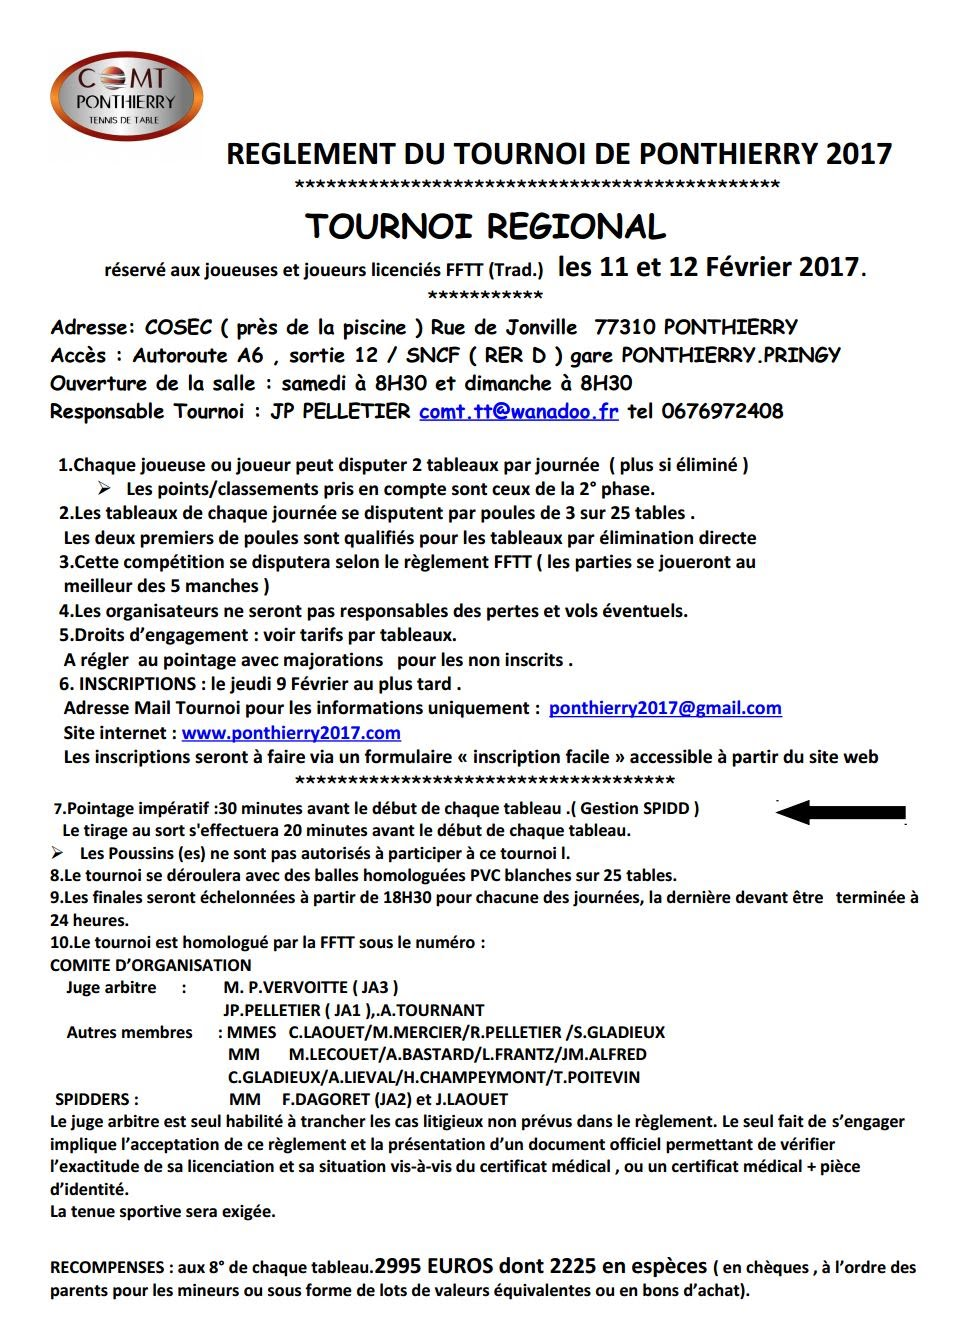 https://sites.google.com/site/comt2017/TOURNOI%202017%20REGLEMENT%20REGIONAL.pdf?attredirects=0&d=1